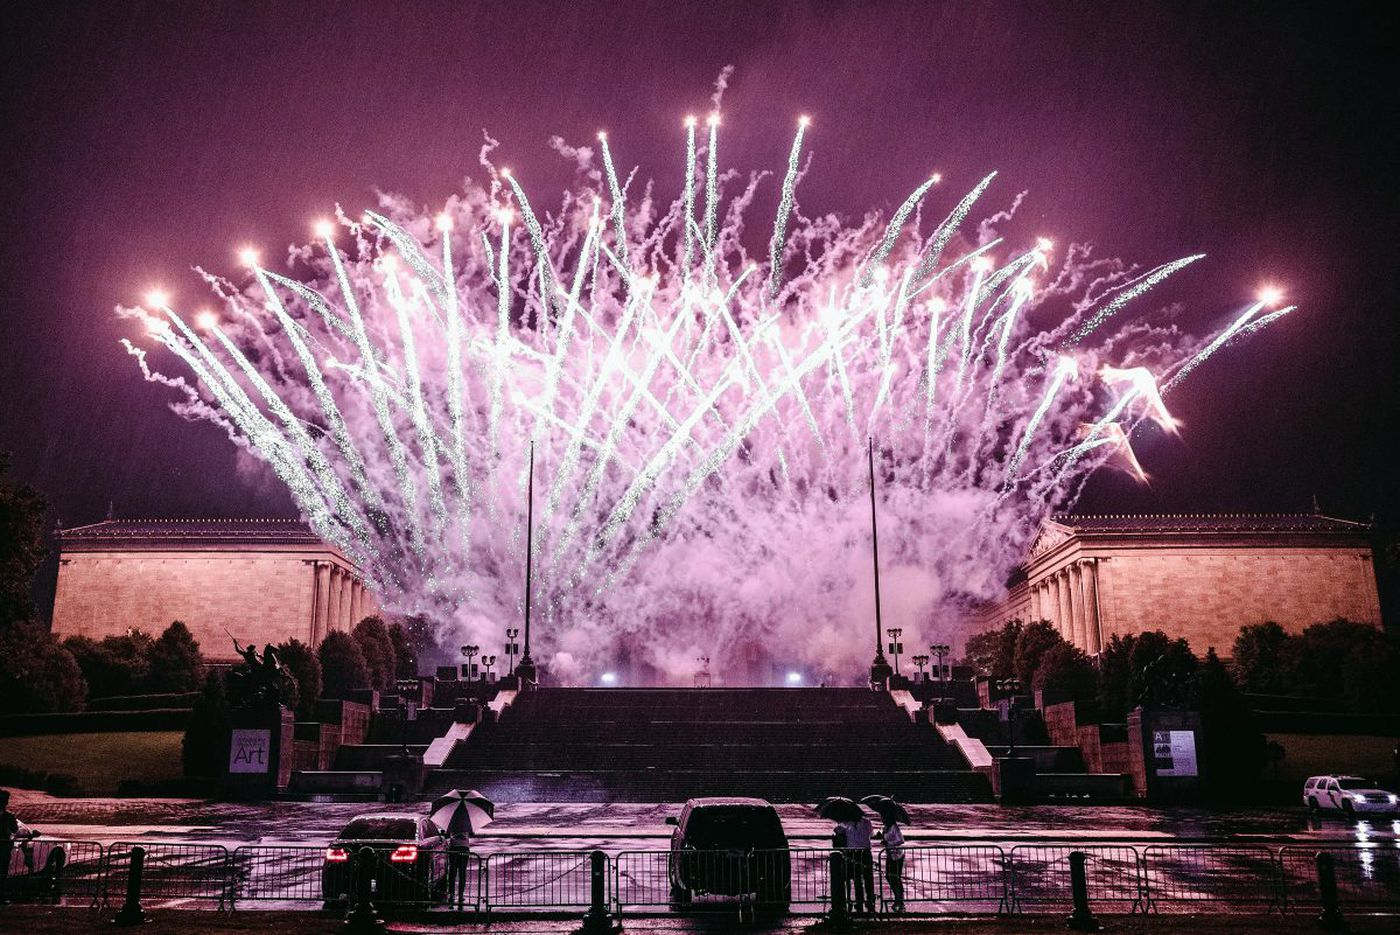 Where to see July 4th fireworks in the Philadelphia area